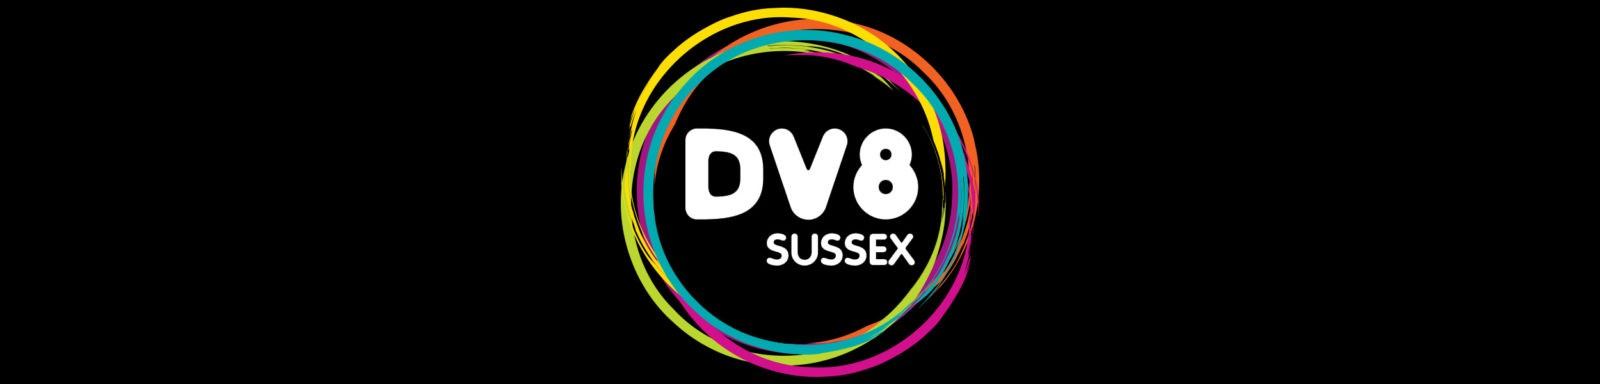 Dv8 Sussex Job Vacancies